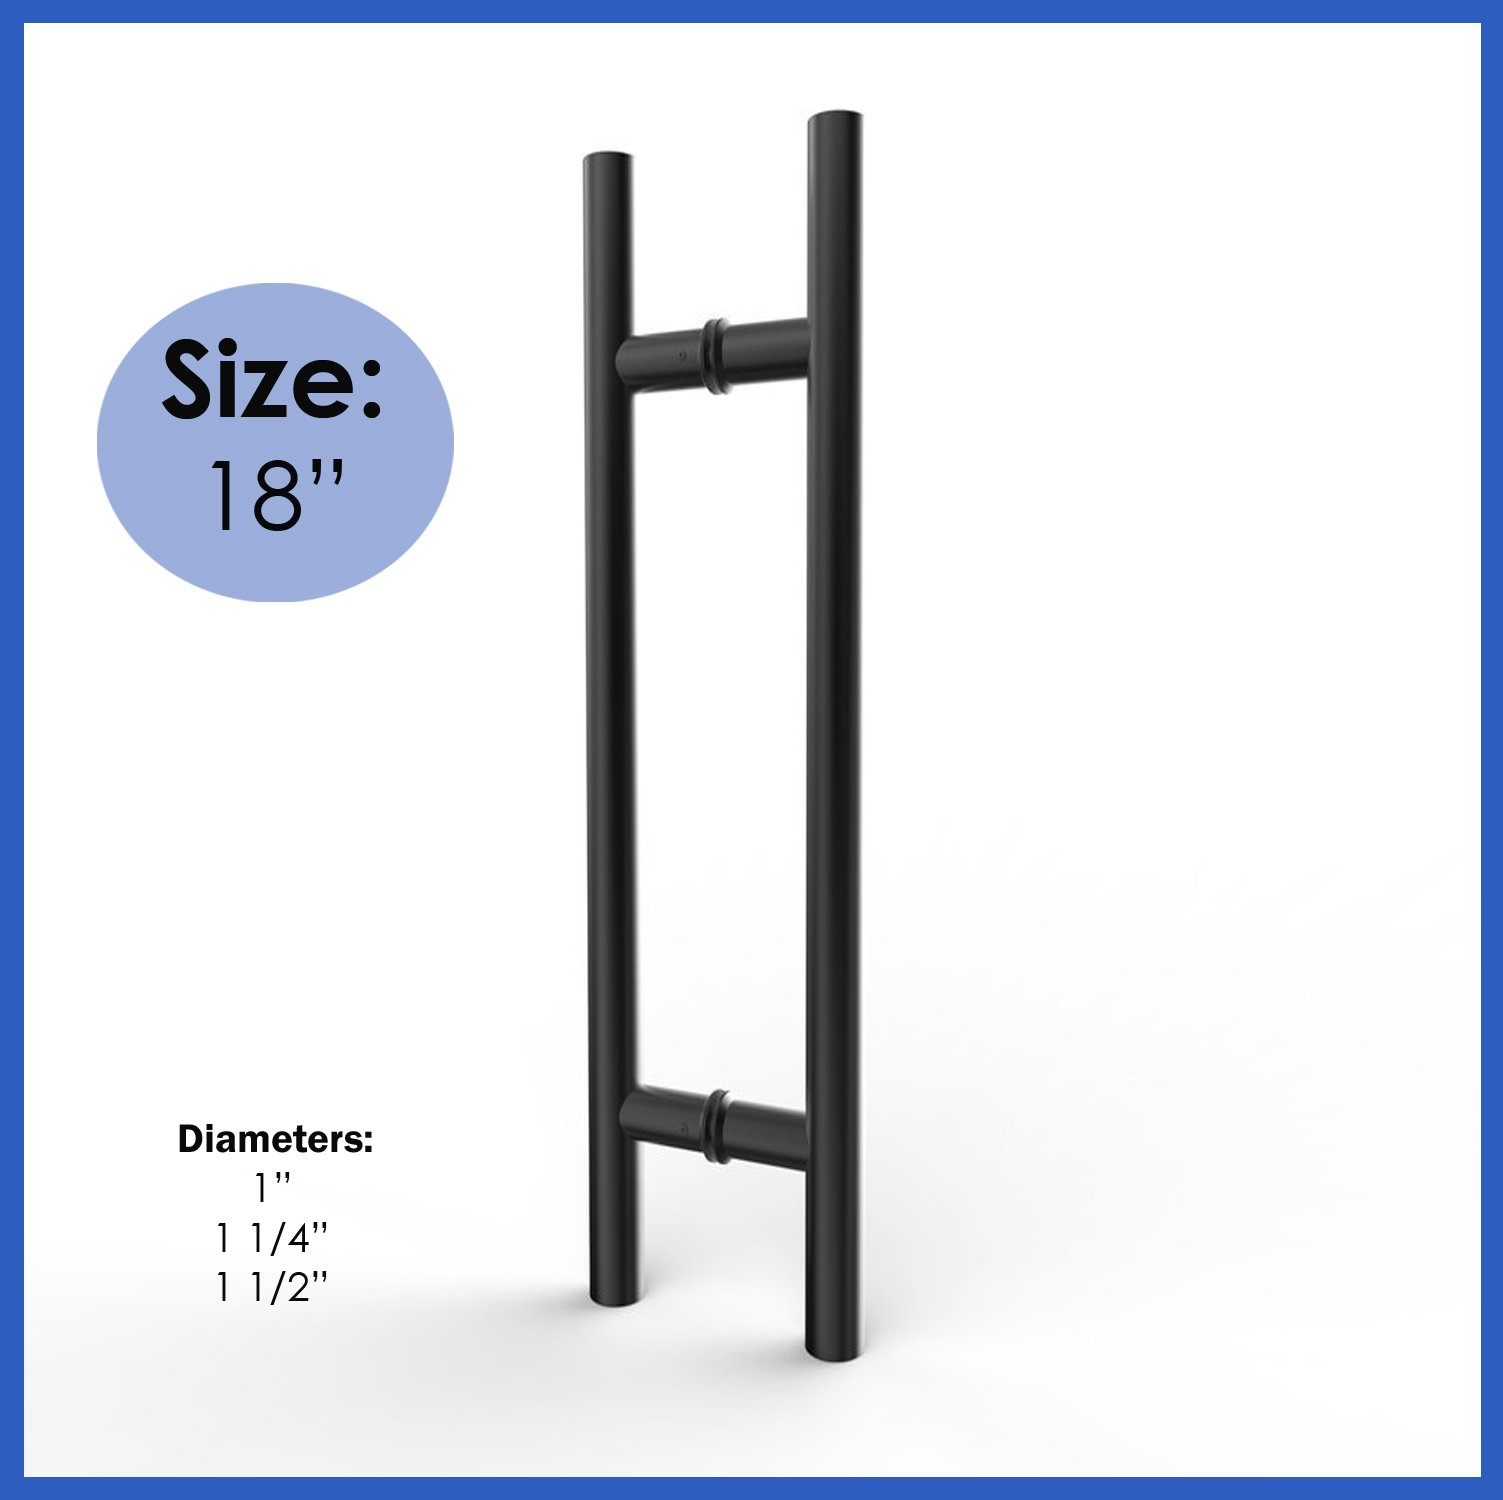 Modern & Contemporary Round Bar / Ladder/ H-shape Style 457mm / 18 Inches Push-pull Stainless-steel Door Handle - Black Powder Finish